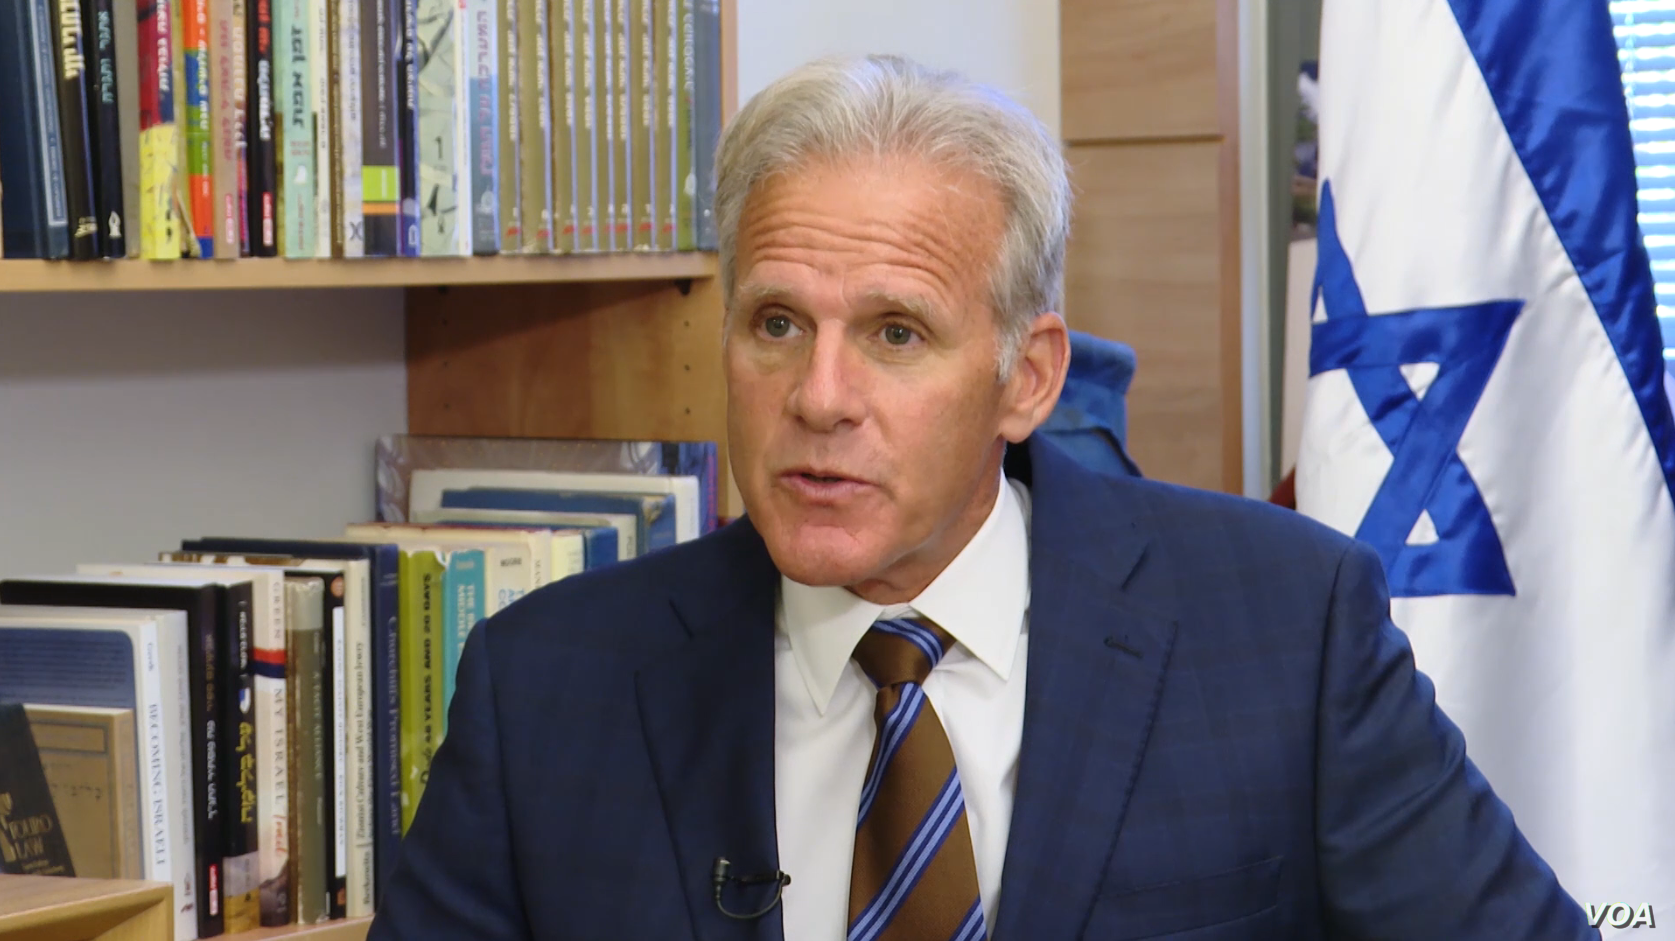 Israeli Deputy Minister for Diplomacy Michael Oren speaks to VOA Persian at his office in the Israeli parliament, or Knesset, on October 10, 2018.